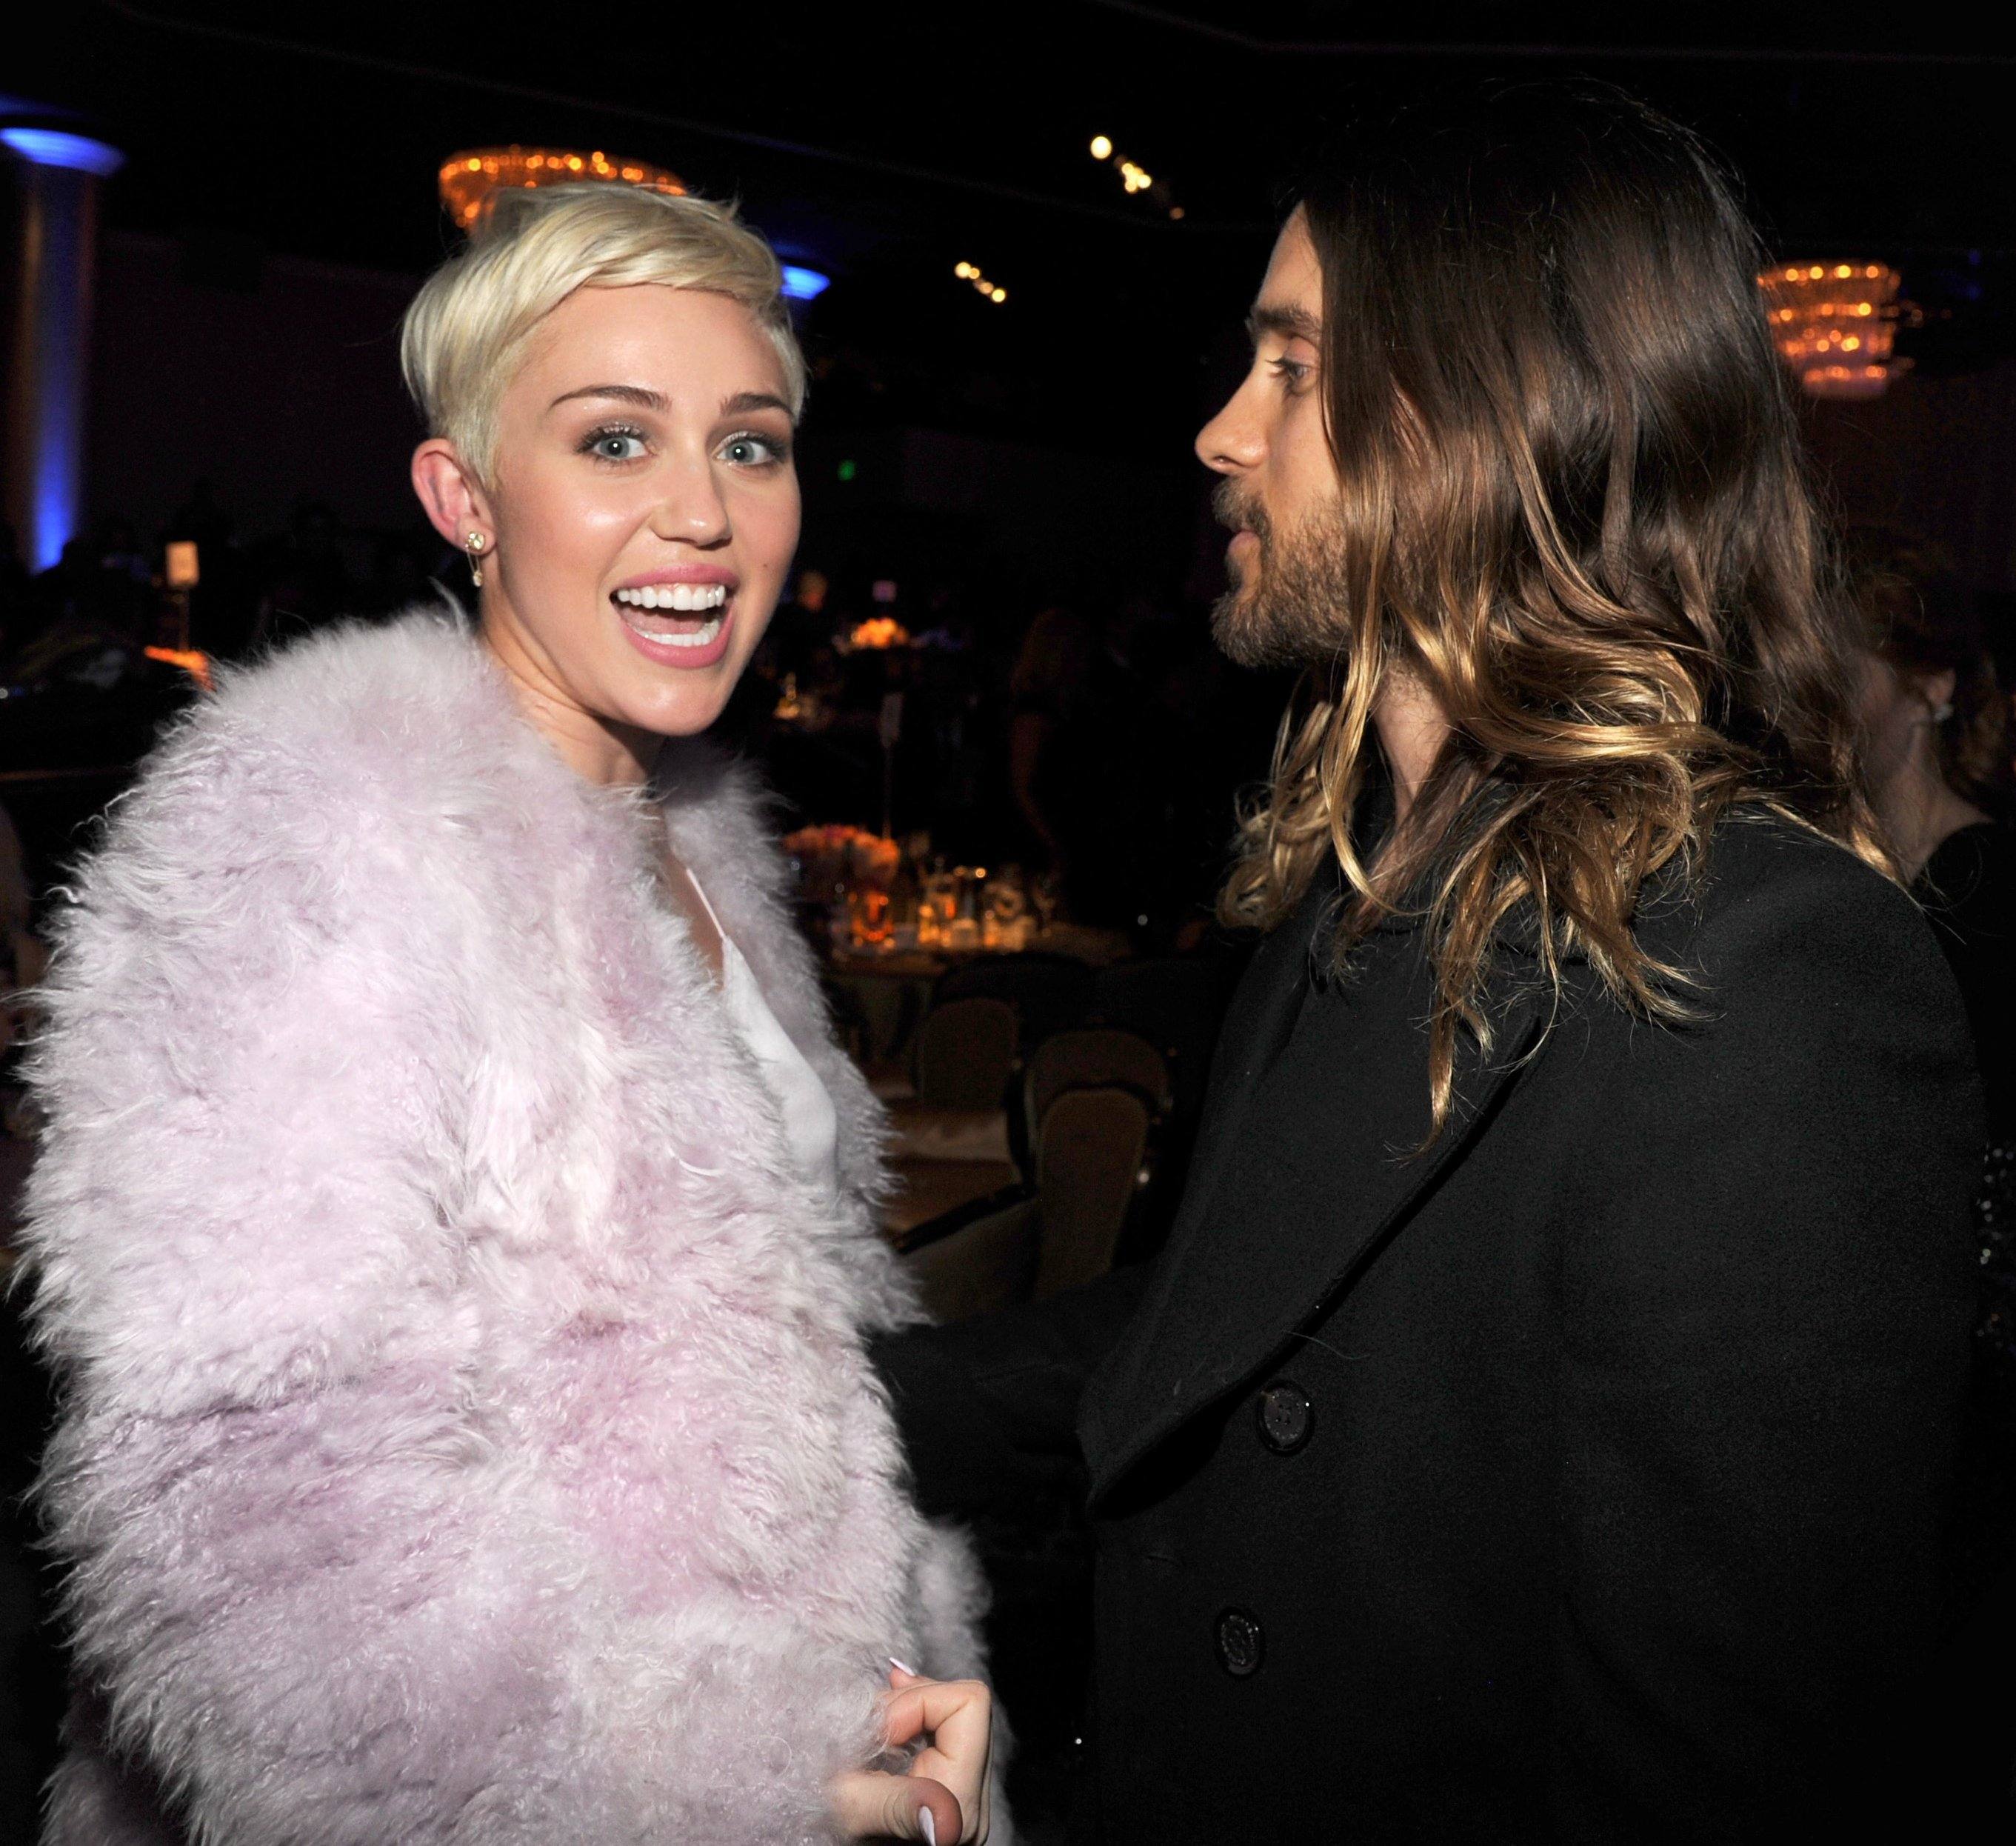 Miley Cyrus and Jared Leto